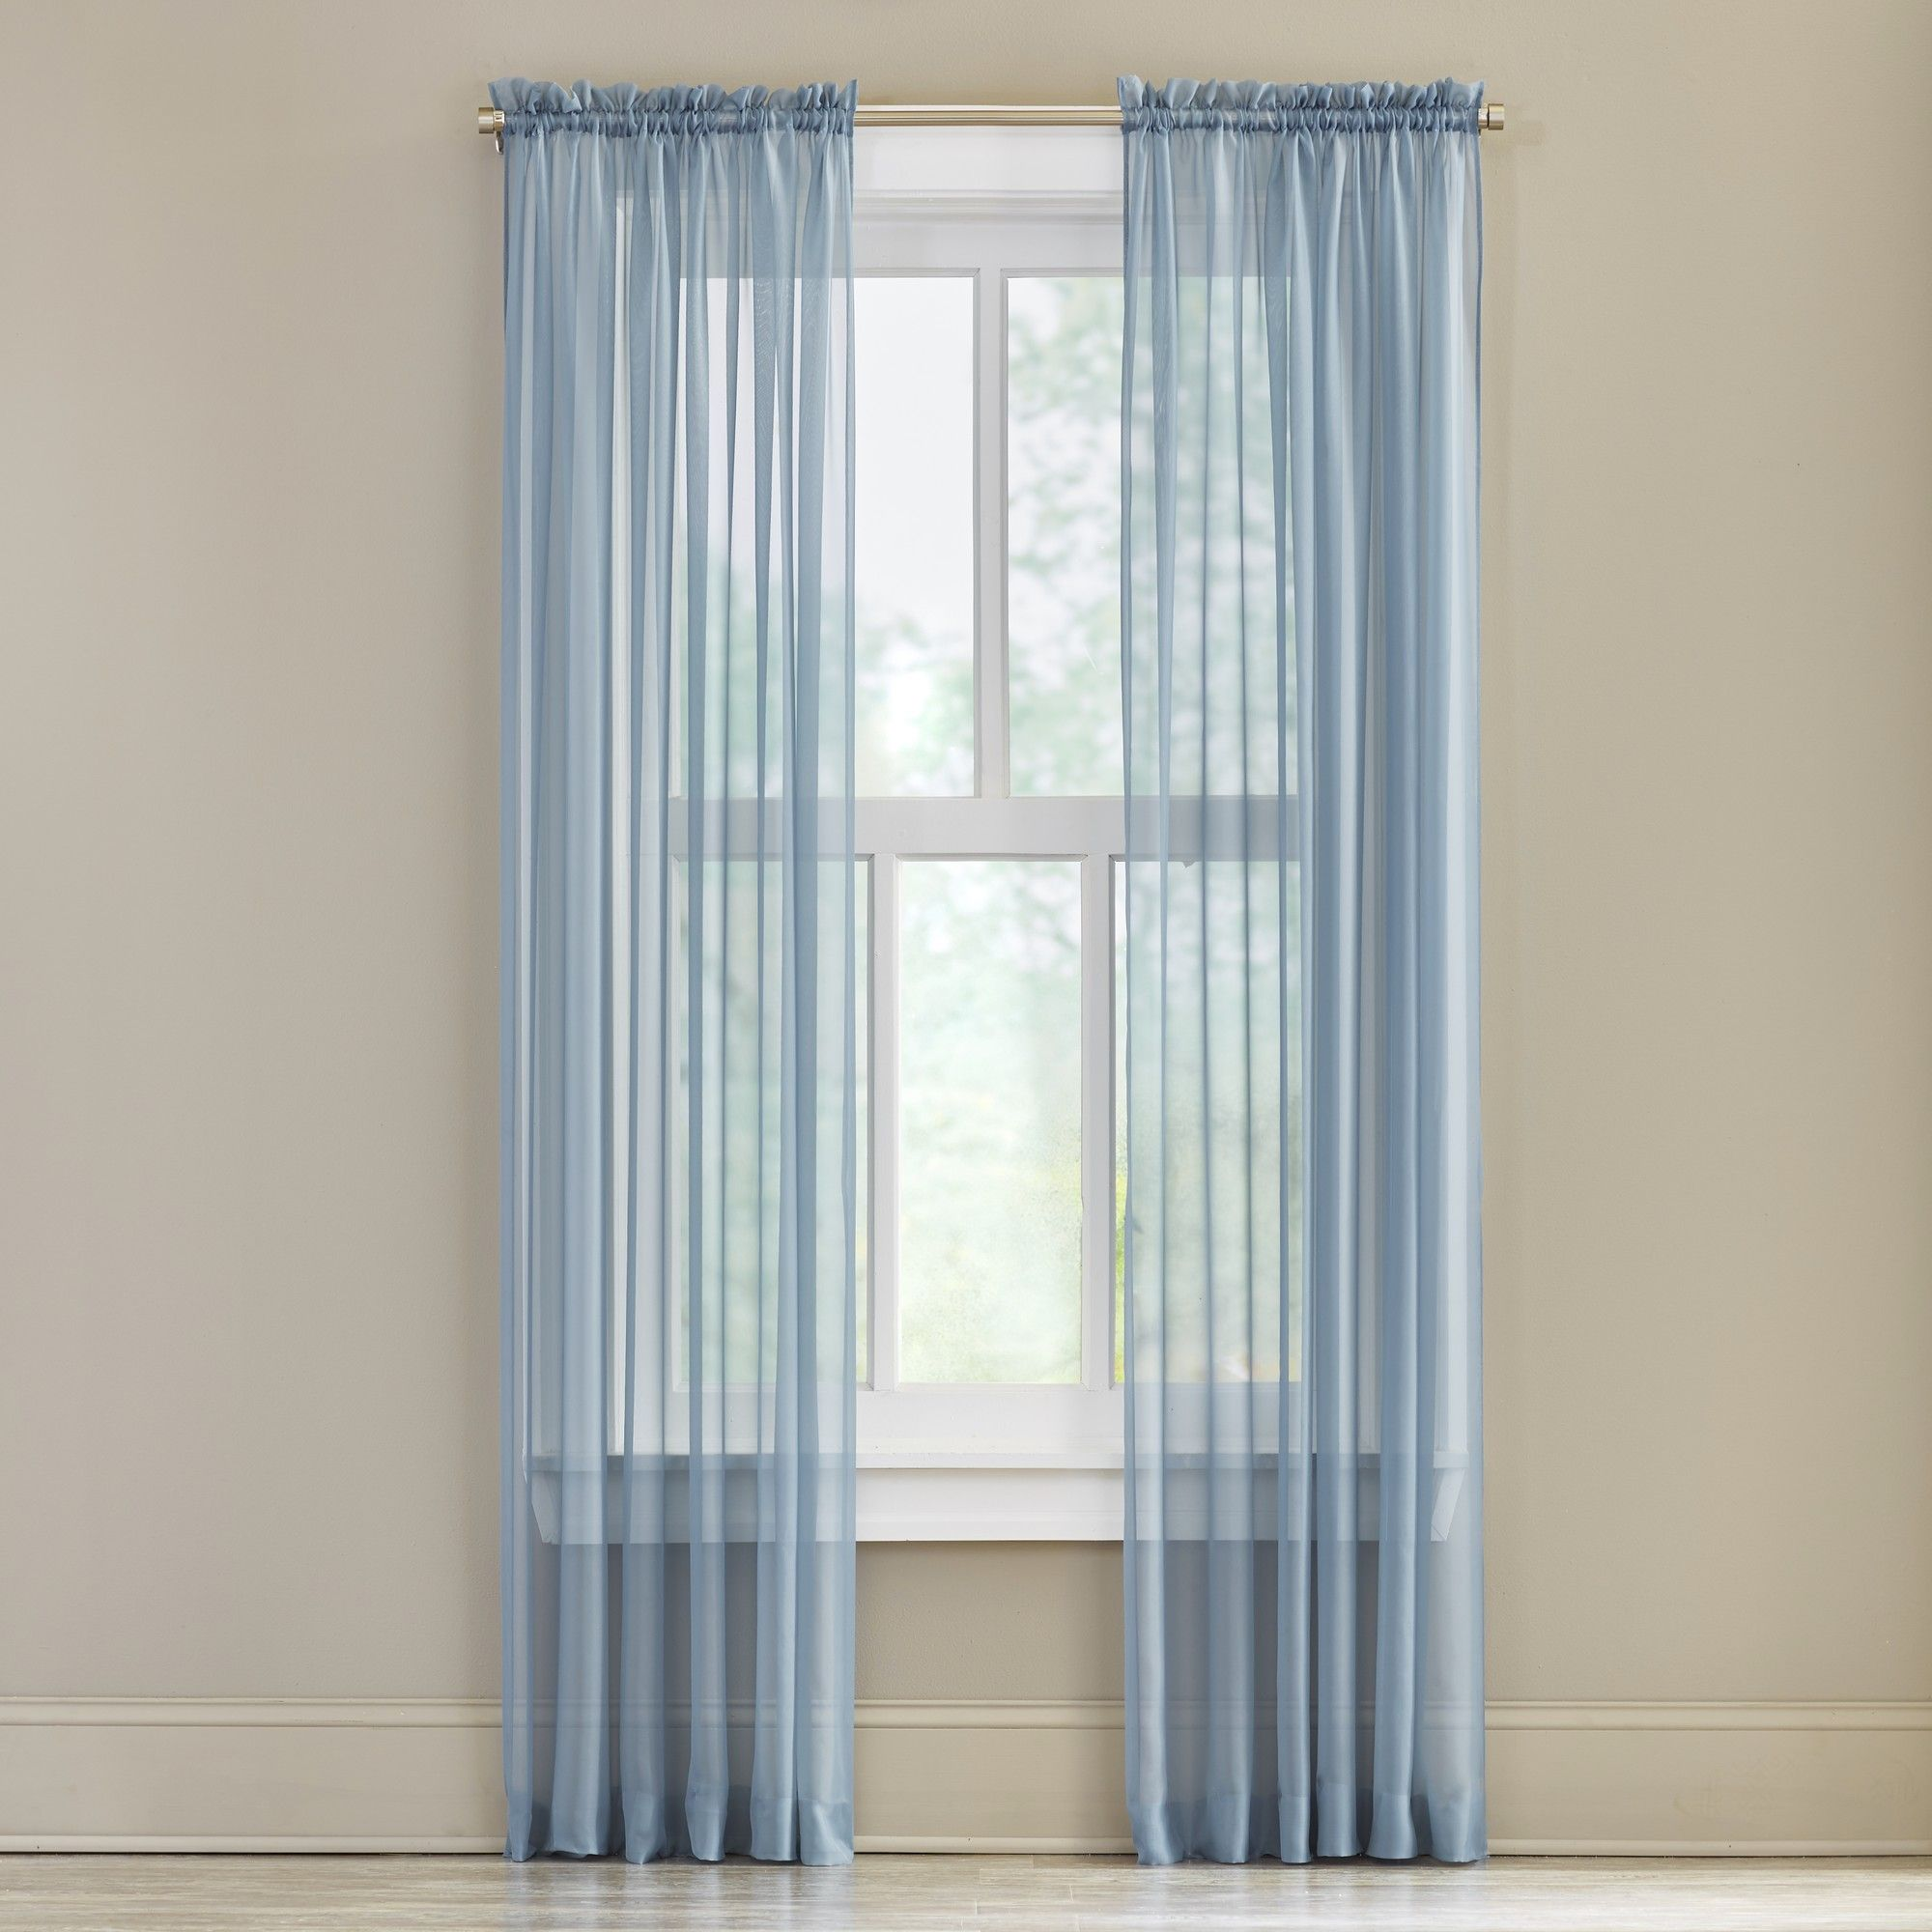 linen grommet reviews blend curtain window check sheer panels plaid semi pdp main treatments joss stitched grid